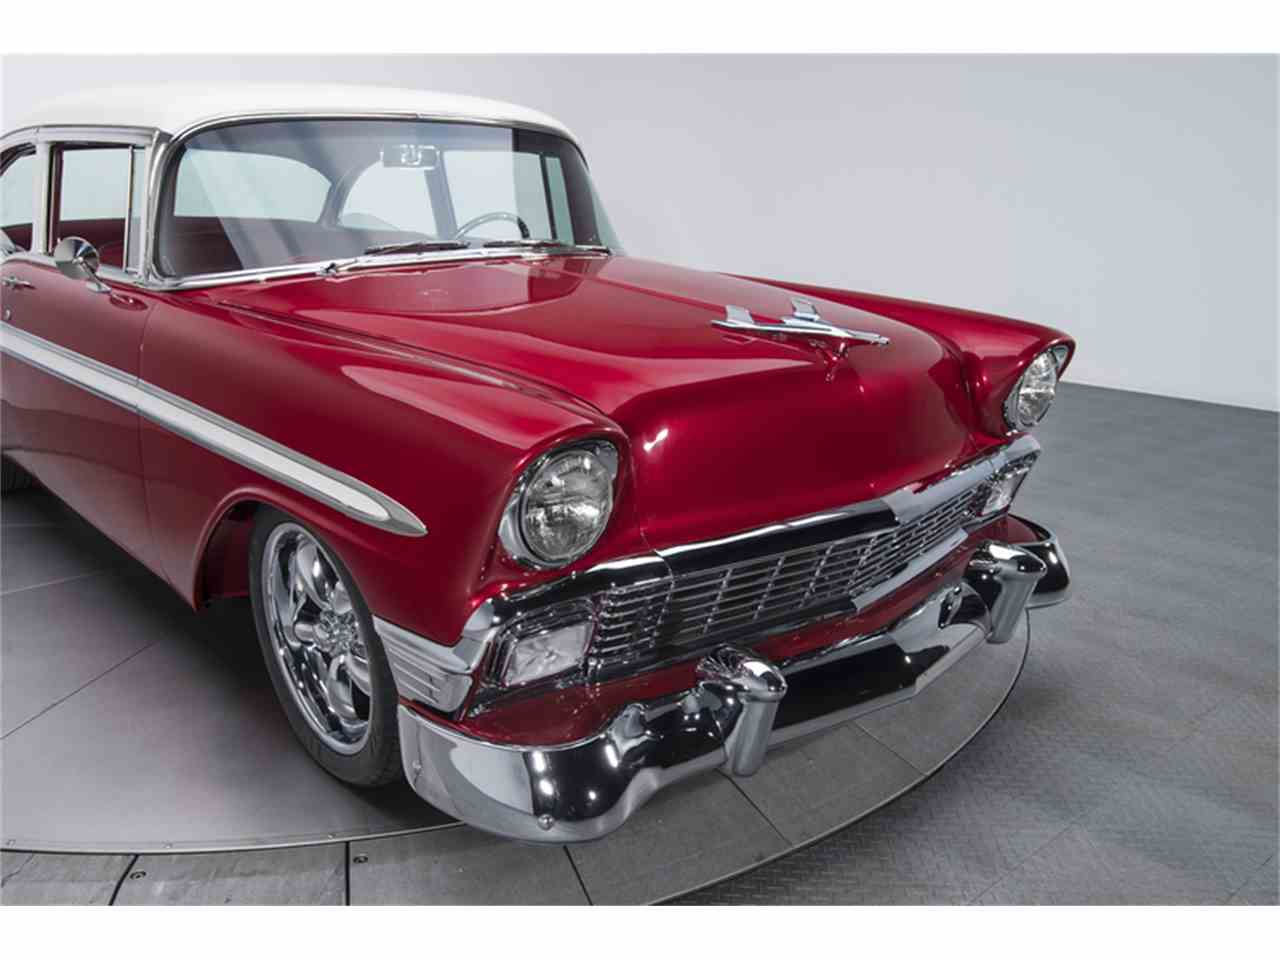 1956 chevrolet bel air for sale classic car liquidators - 1956 Chevrolet Bel Air For Sale Cc 962812